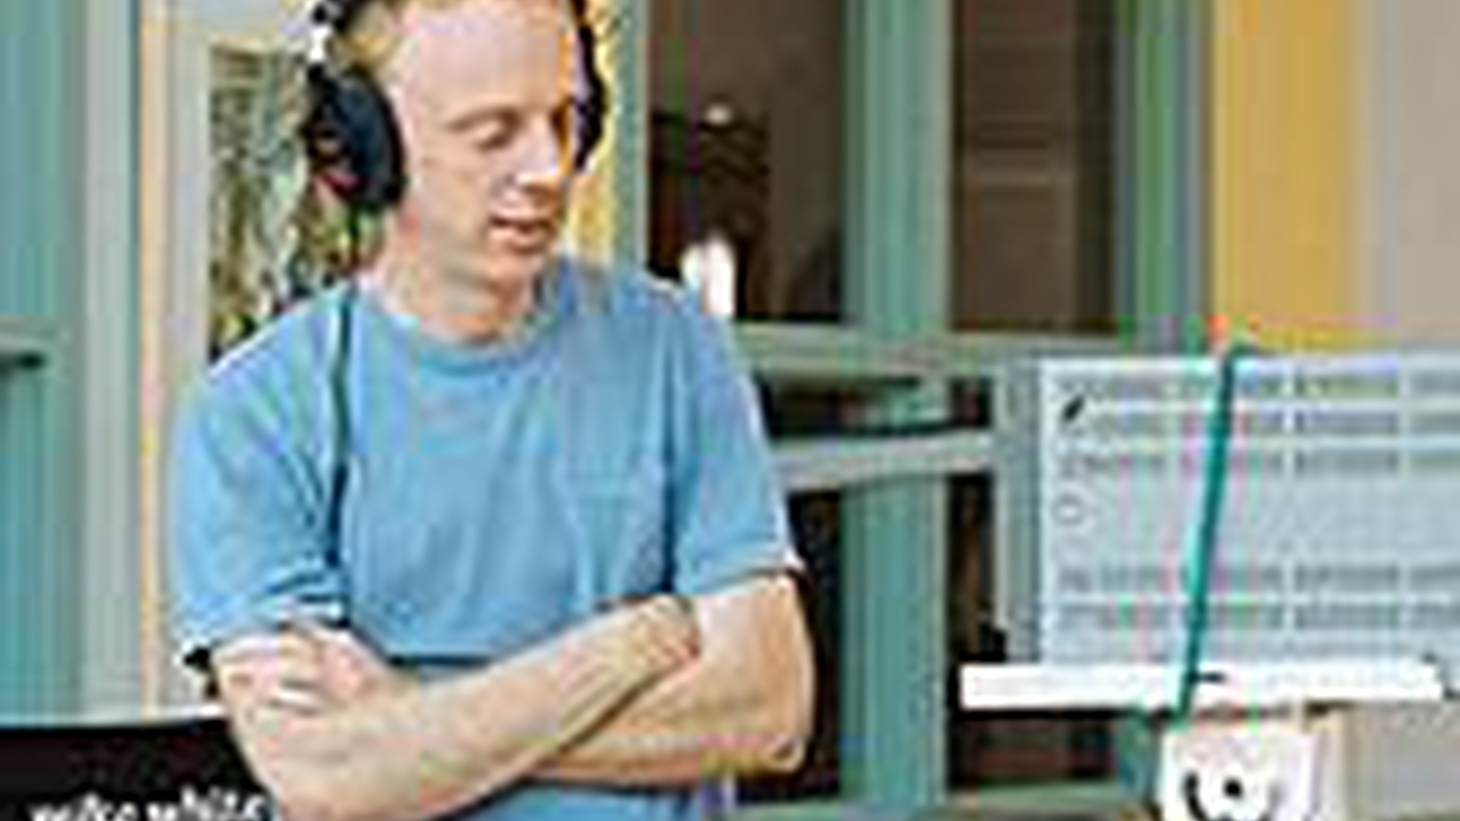 Writer-director and sometimes-actor Mike White has mastered the comedy and drama of the outsider. His scripts include School of Rock, The Good Girl, Nacho Libre and his newest, Year of the Dog.   We discuss his shaggy career.